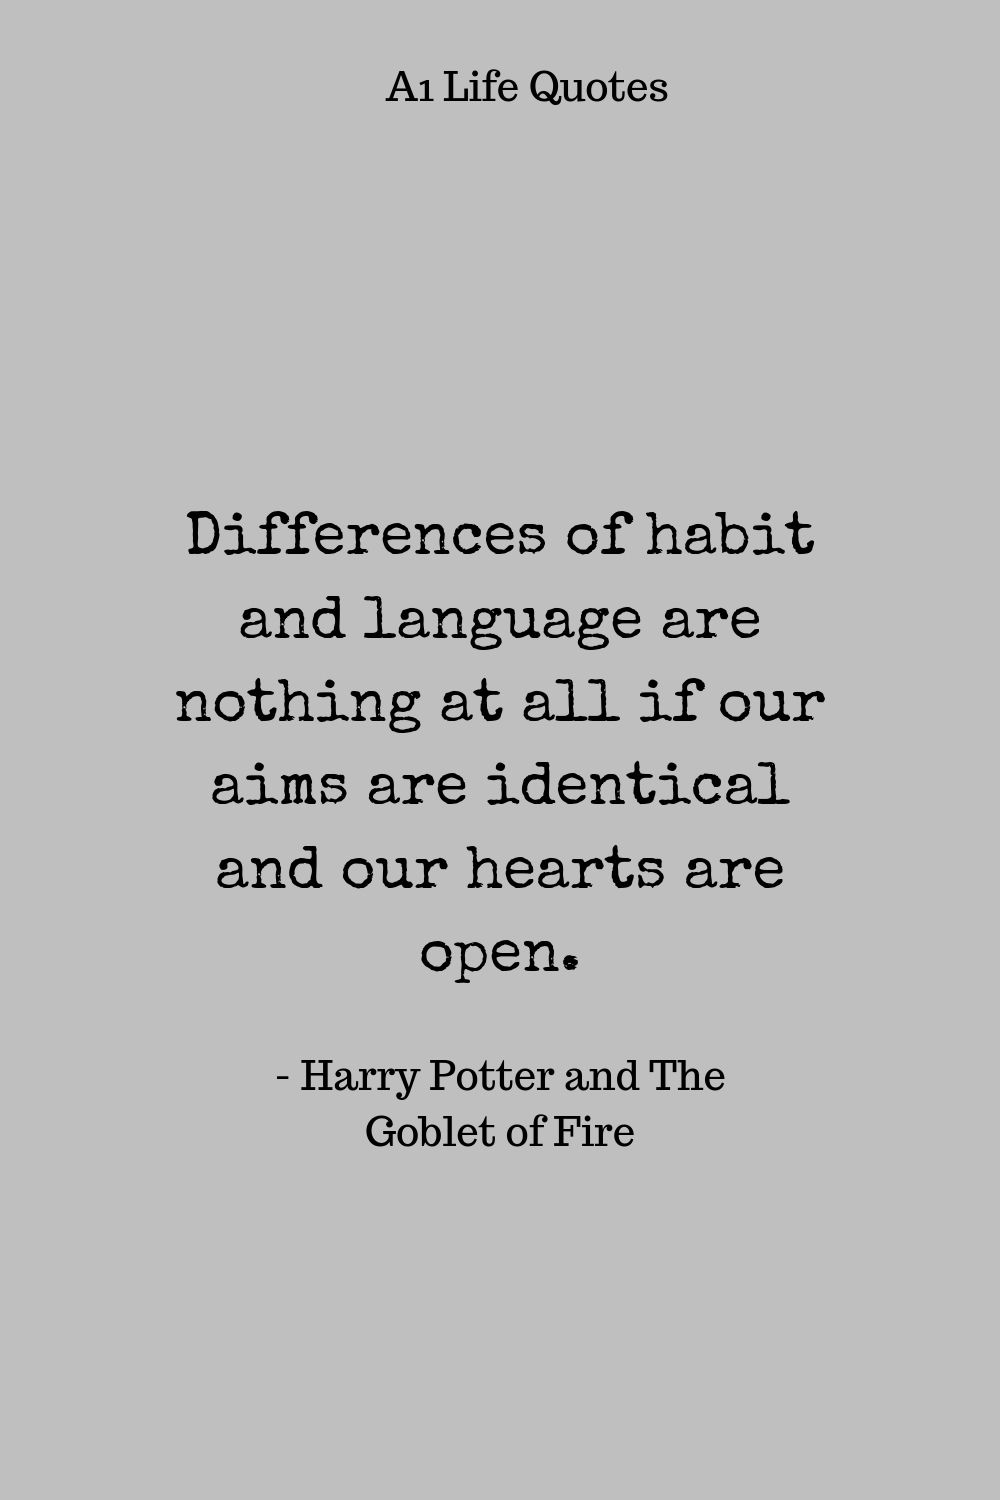 i solemnly swear harry potter quote